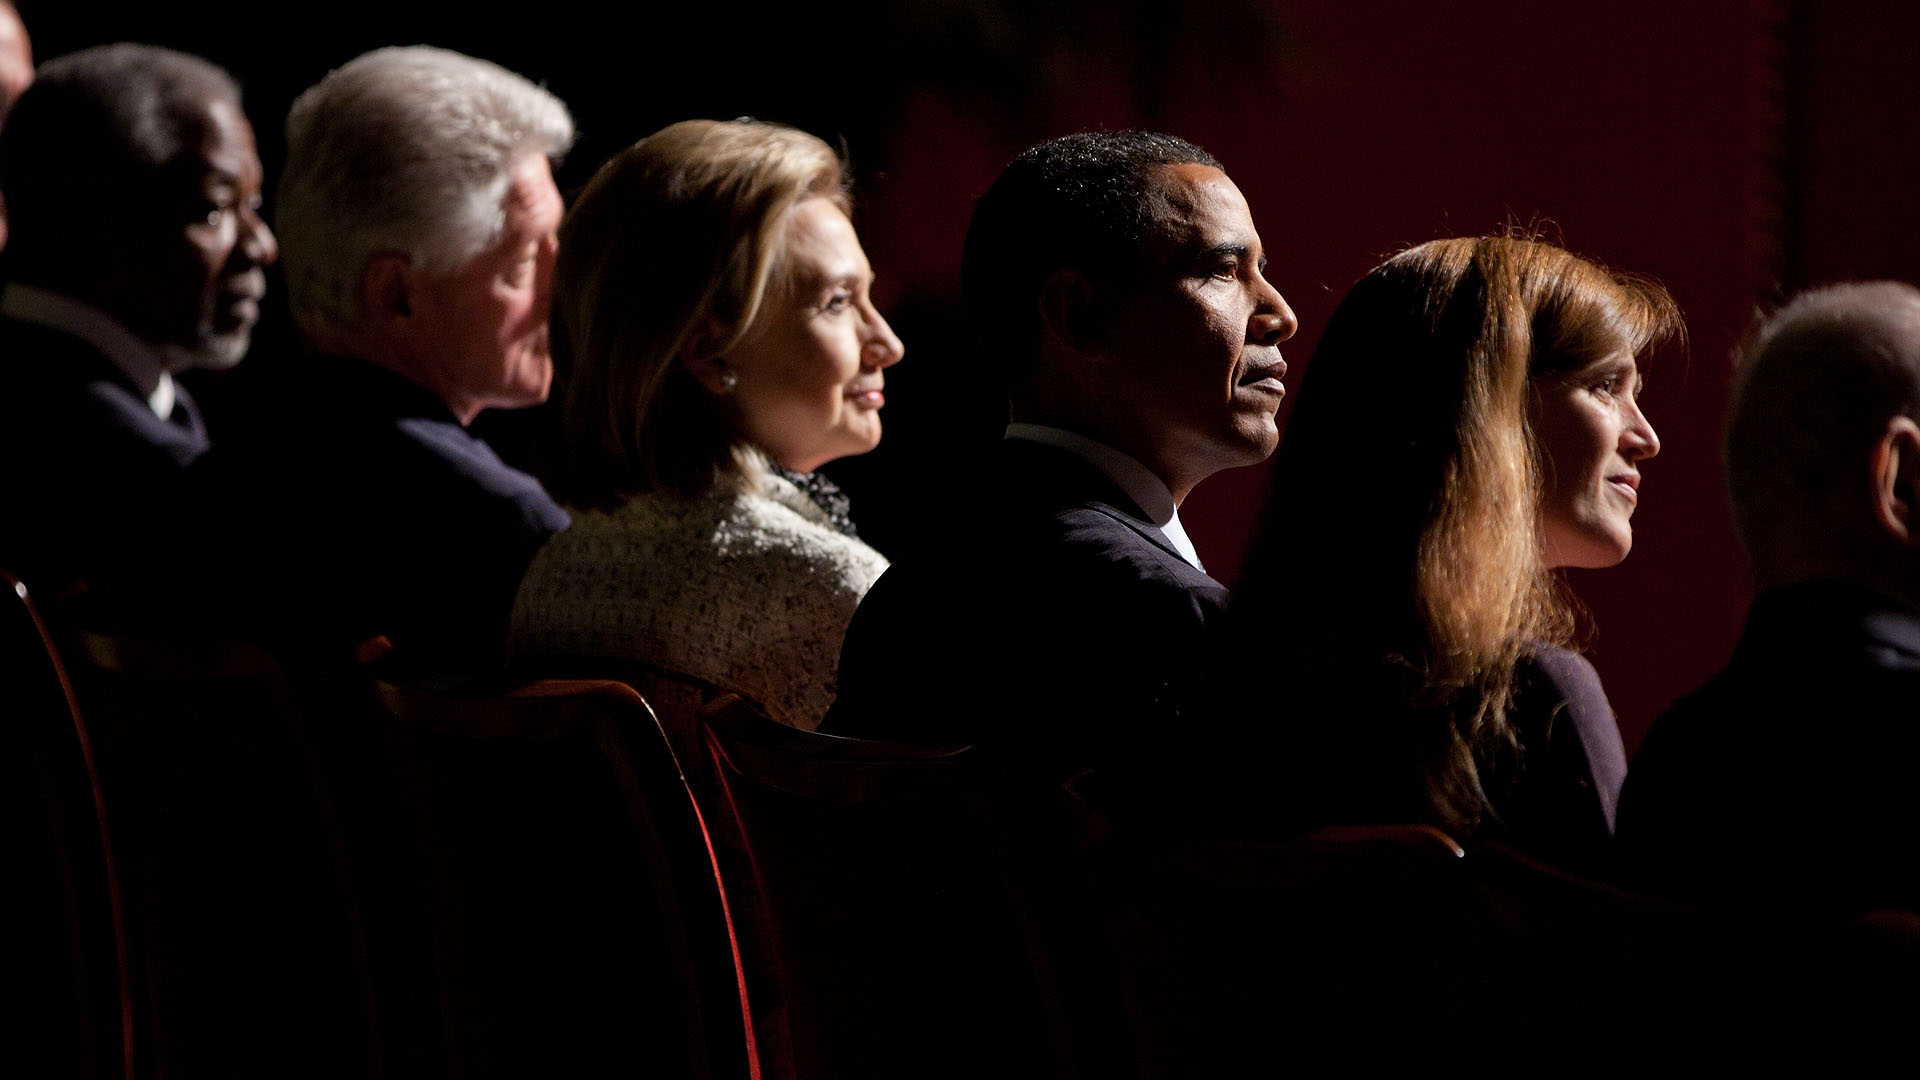 President Obama, Former President Clinton, Secretary Clinton and Samantha Power at Richard Holbrooke's Memorial